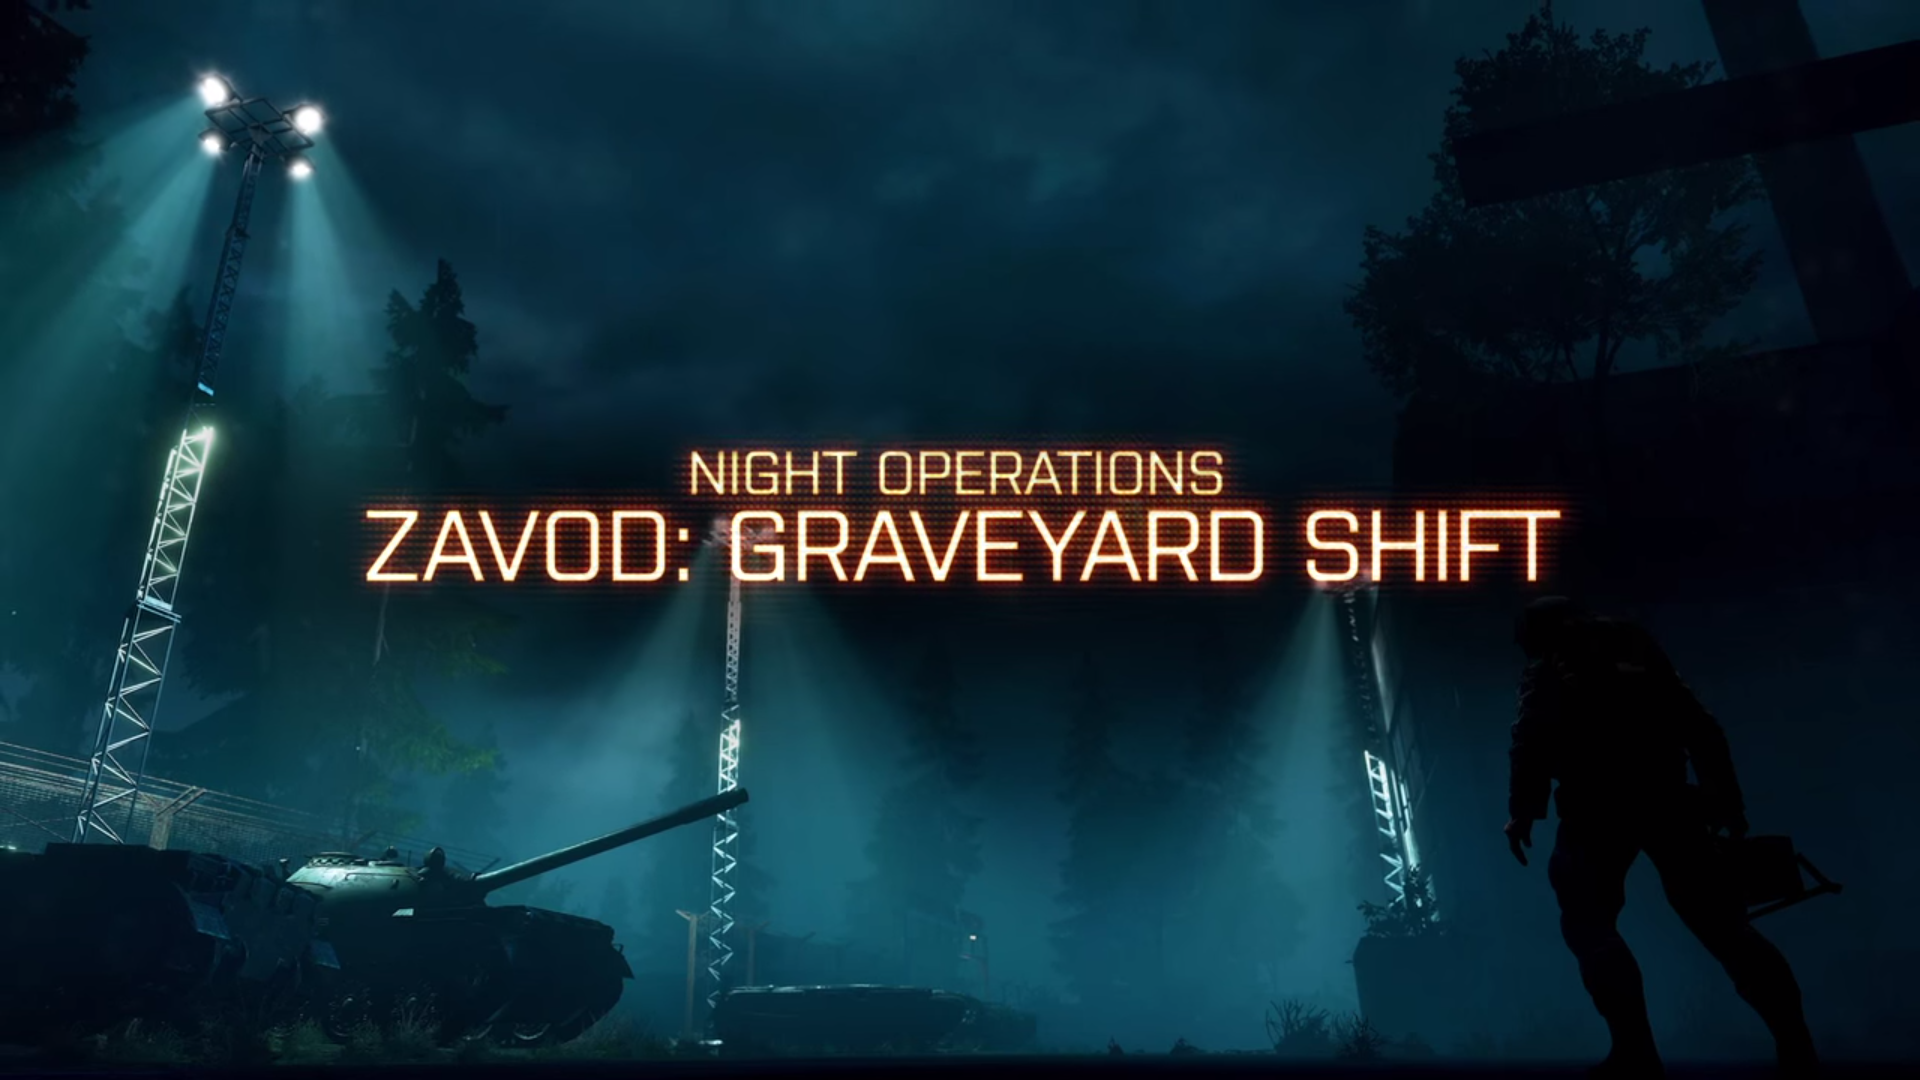 Battlefield 4 Night Operations